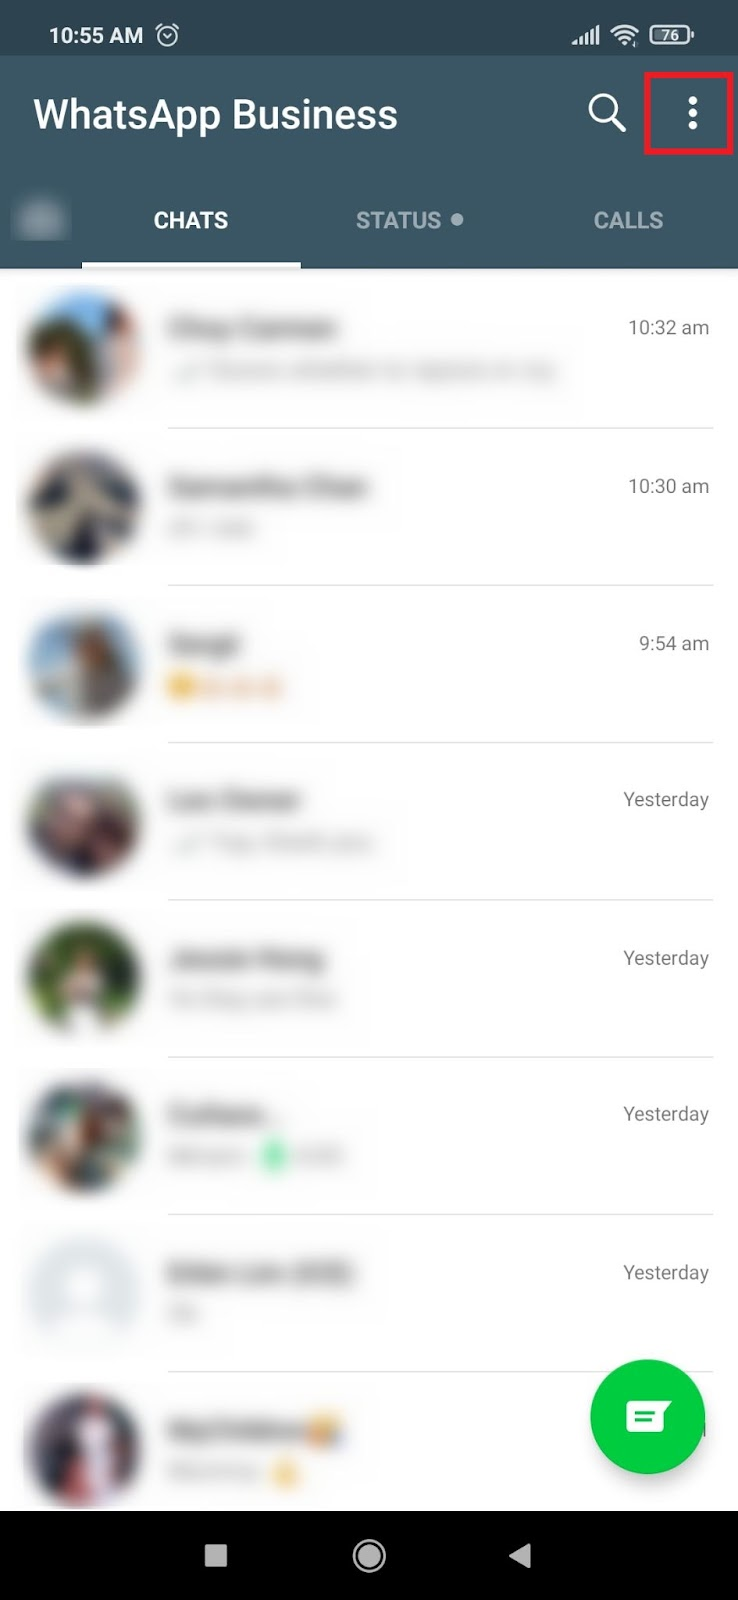 WhatsApp Templates Messages on WhatsApp Business App